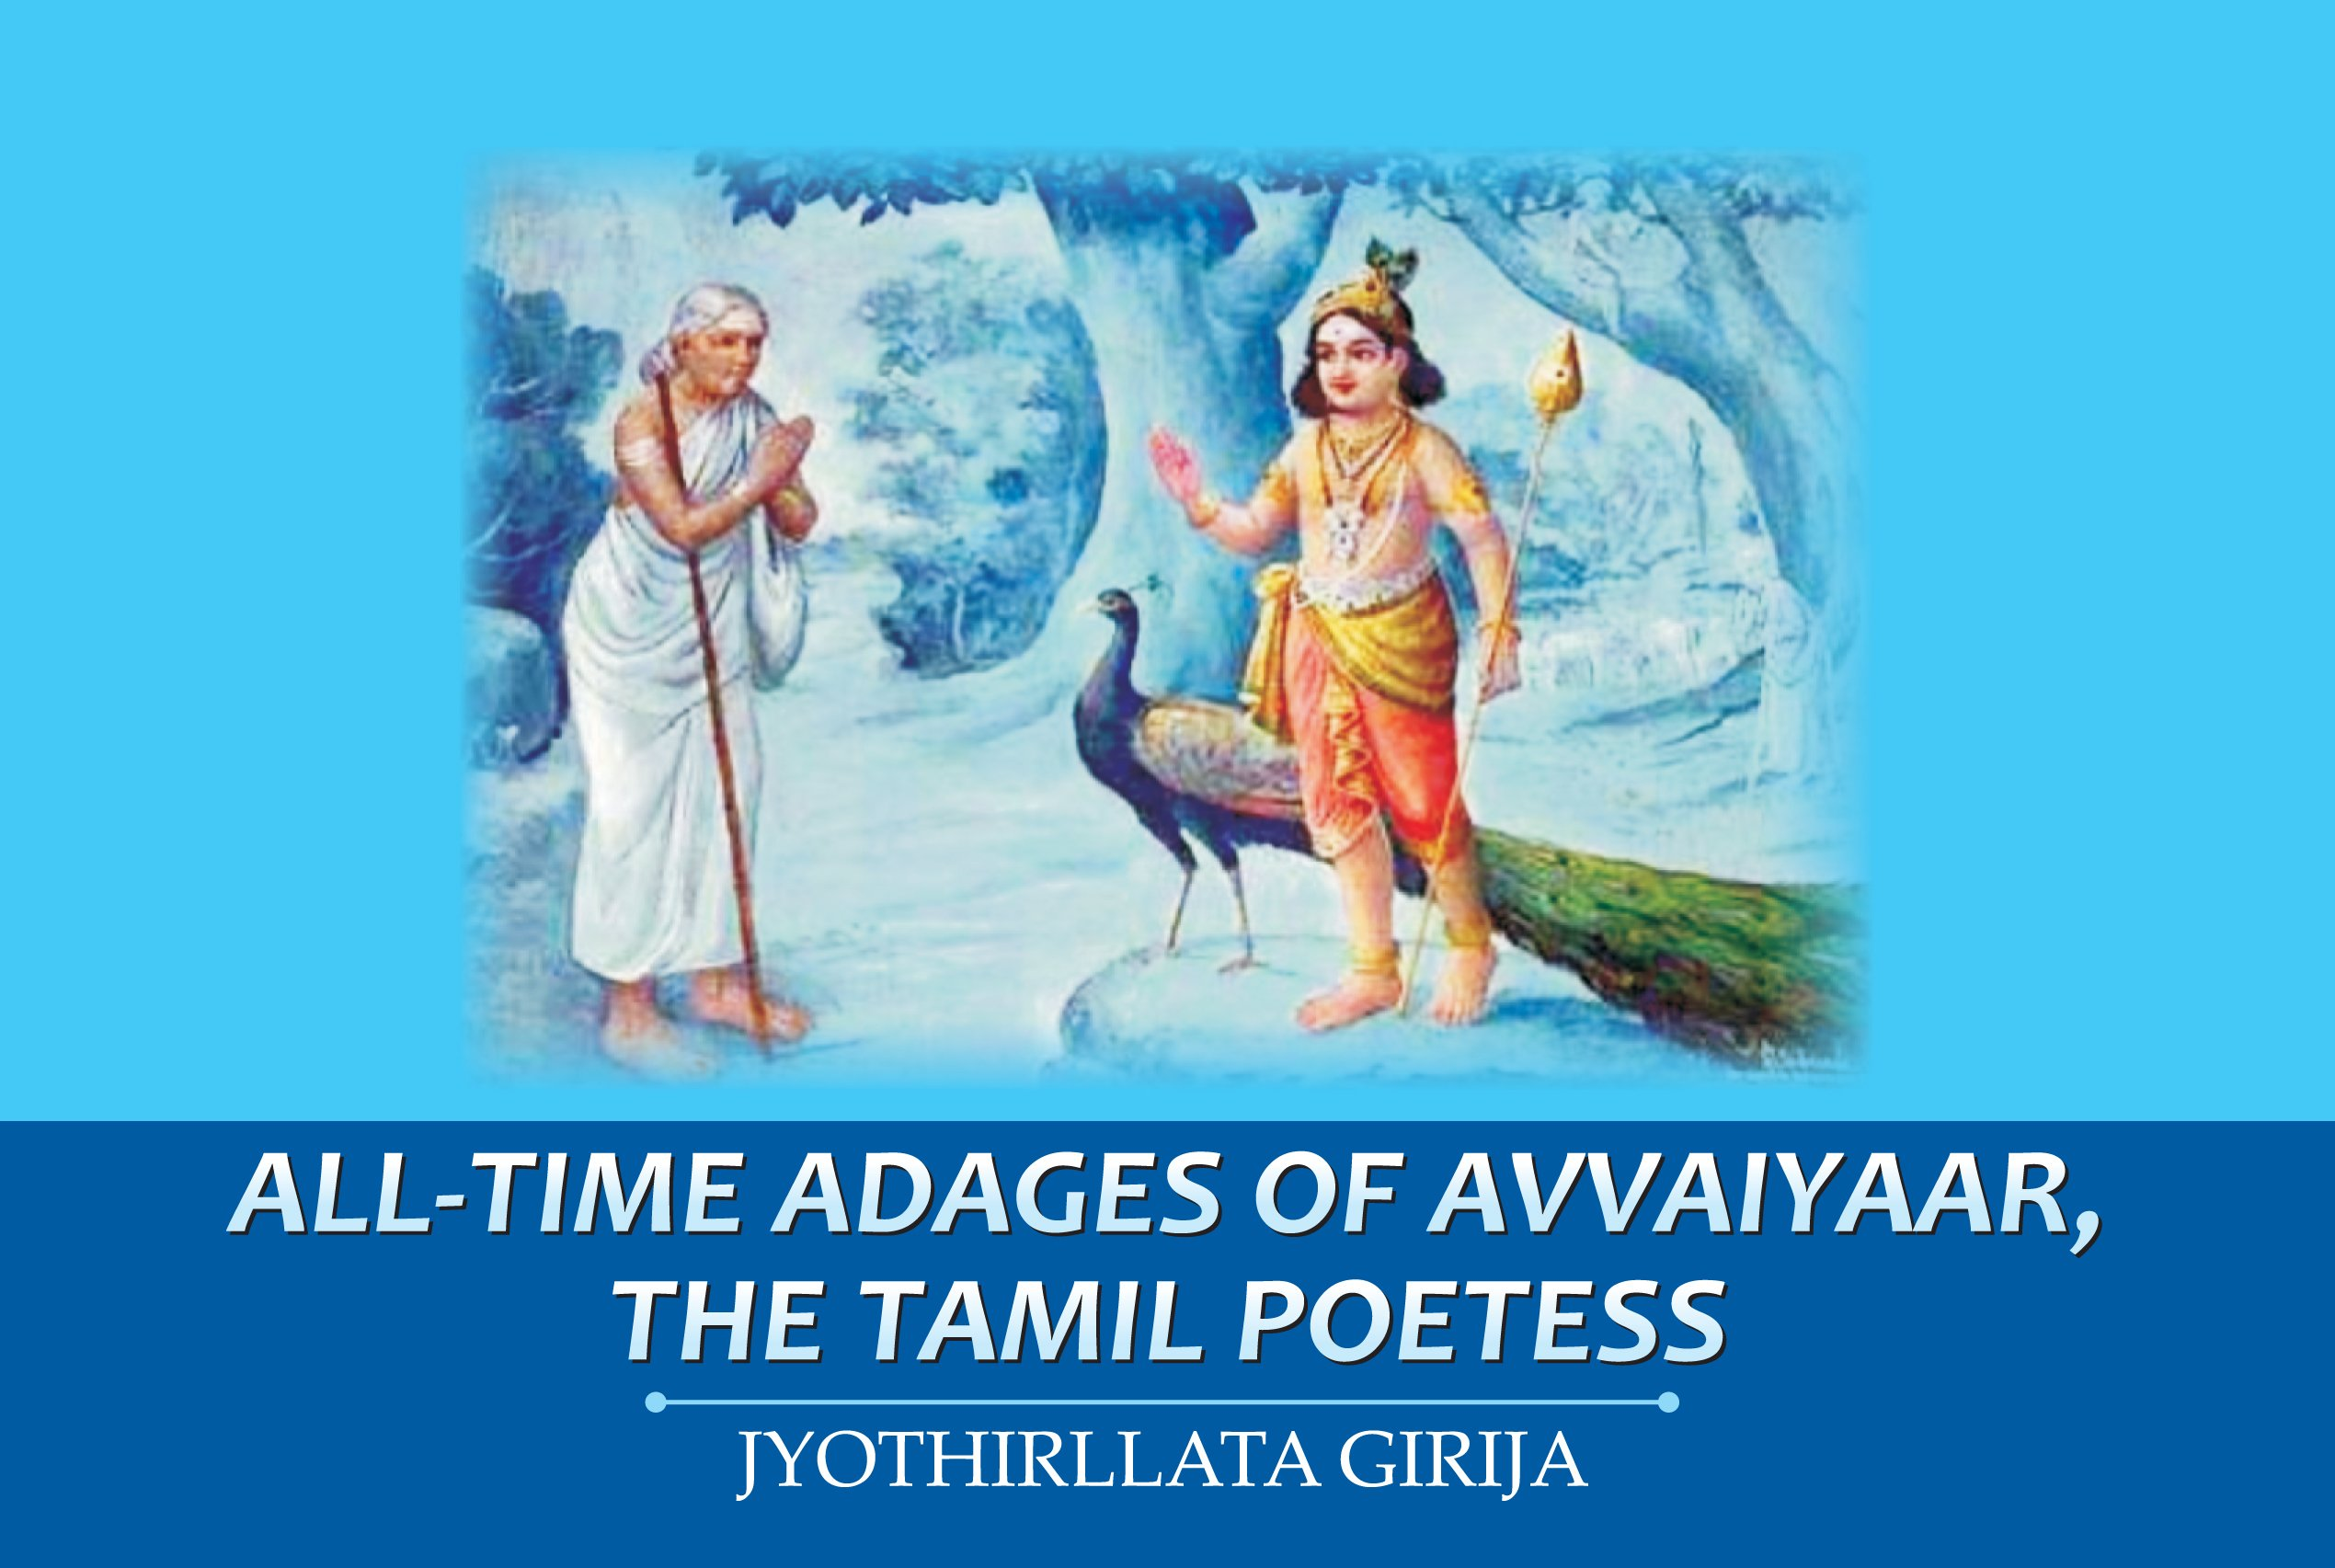 Book Review: All-time Adages of Avvaiyaar, the Tamil Poetess by Jyothirllata Girija